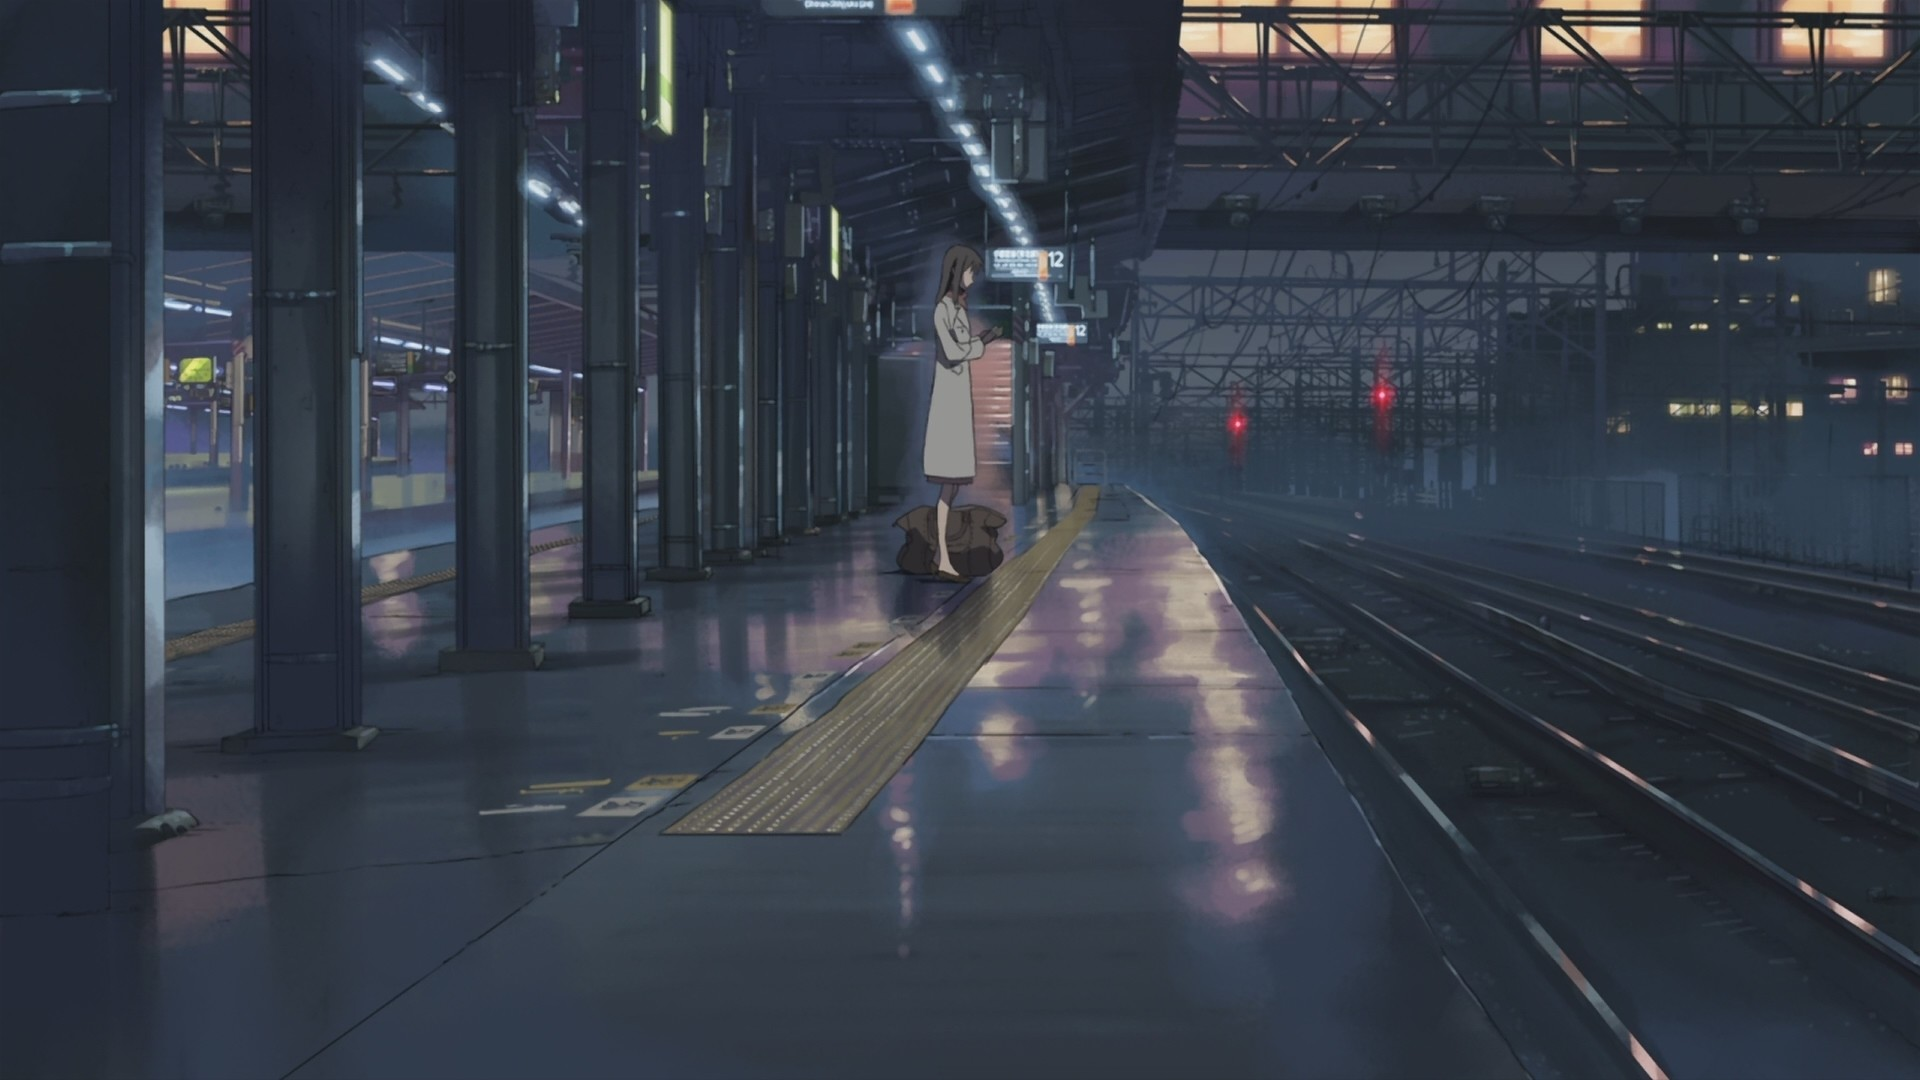 Lofi Wallpaper: Makoto Shinkai Wallpapers (92+ Images